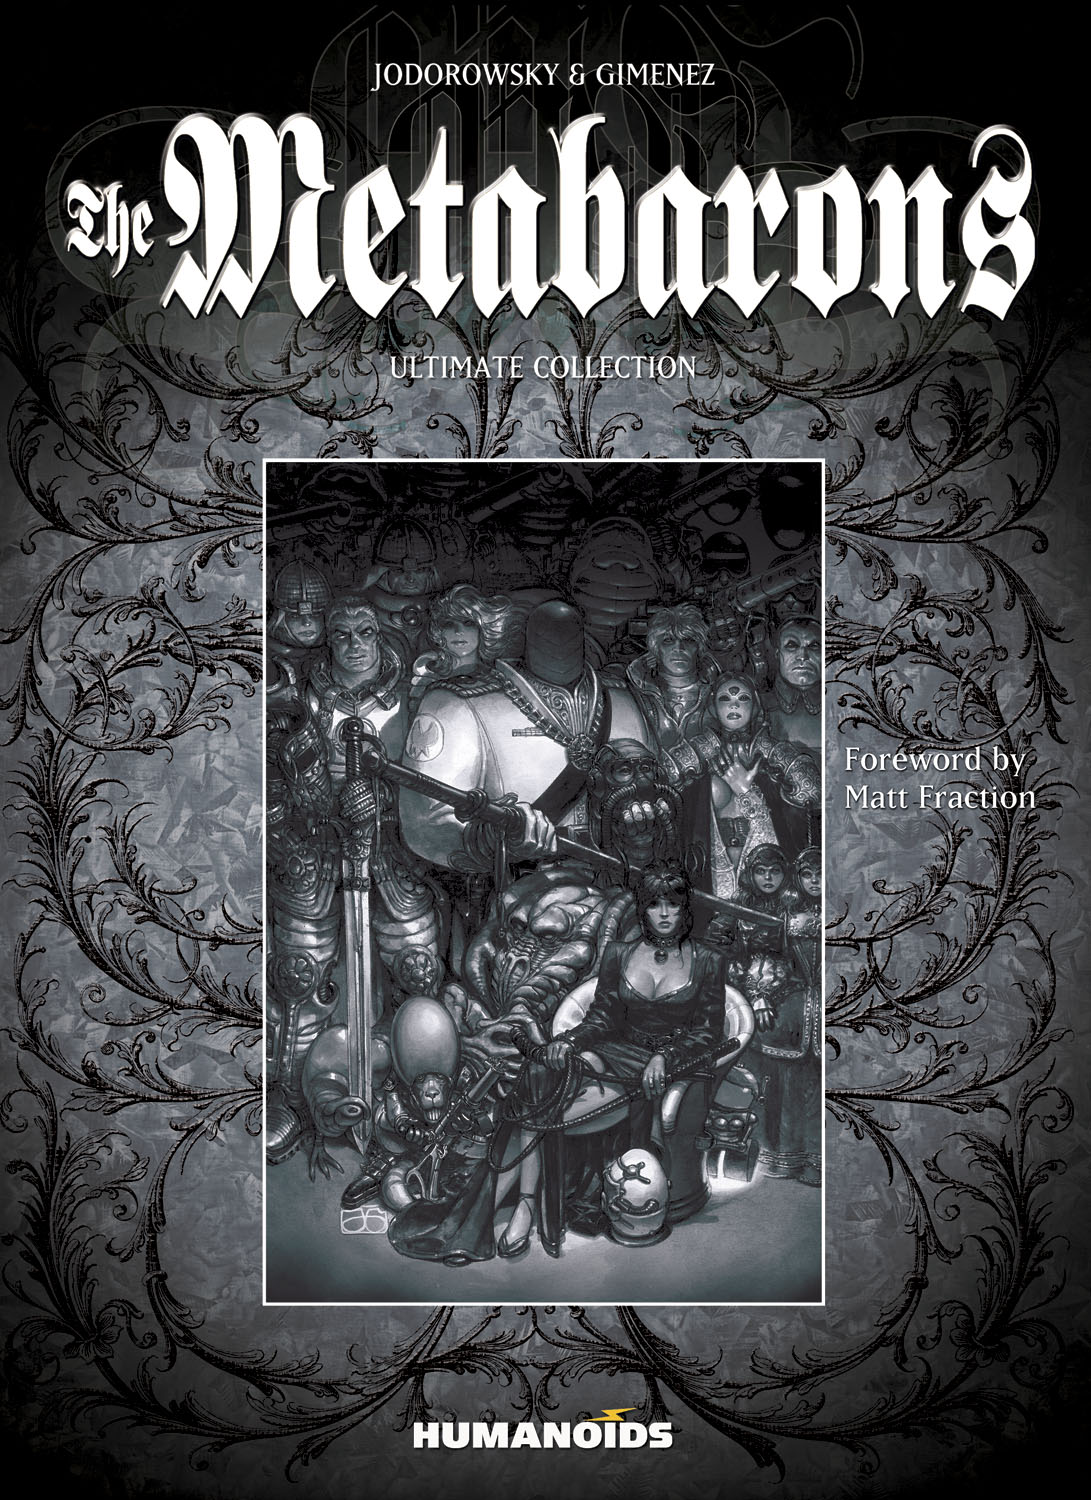 The Metabarons - Hardcover Album : Ultimate Collection